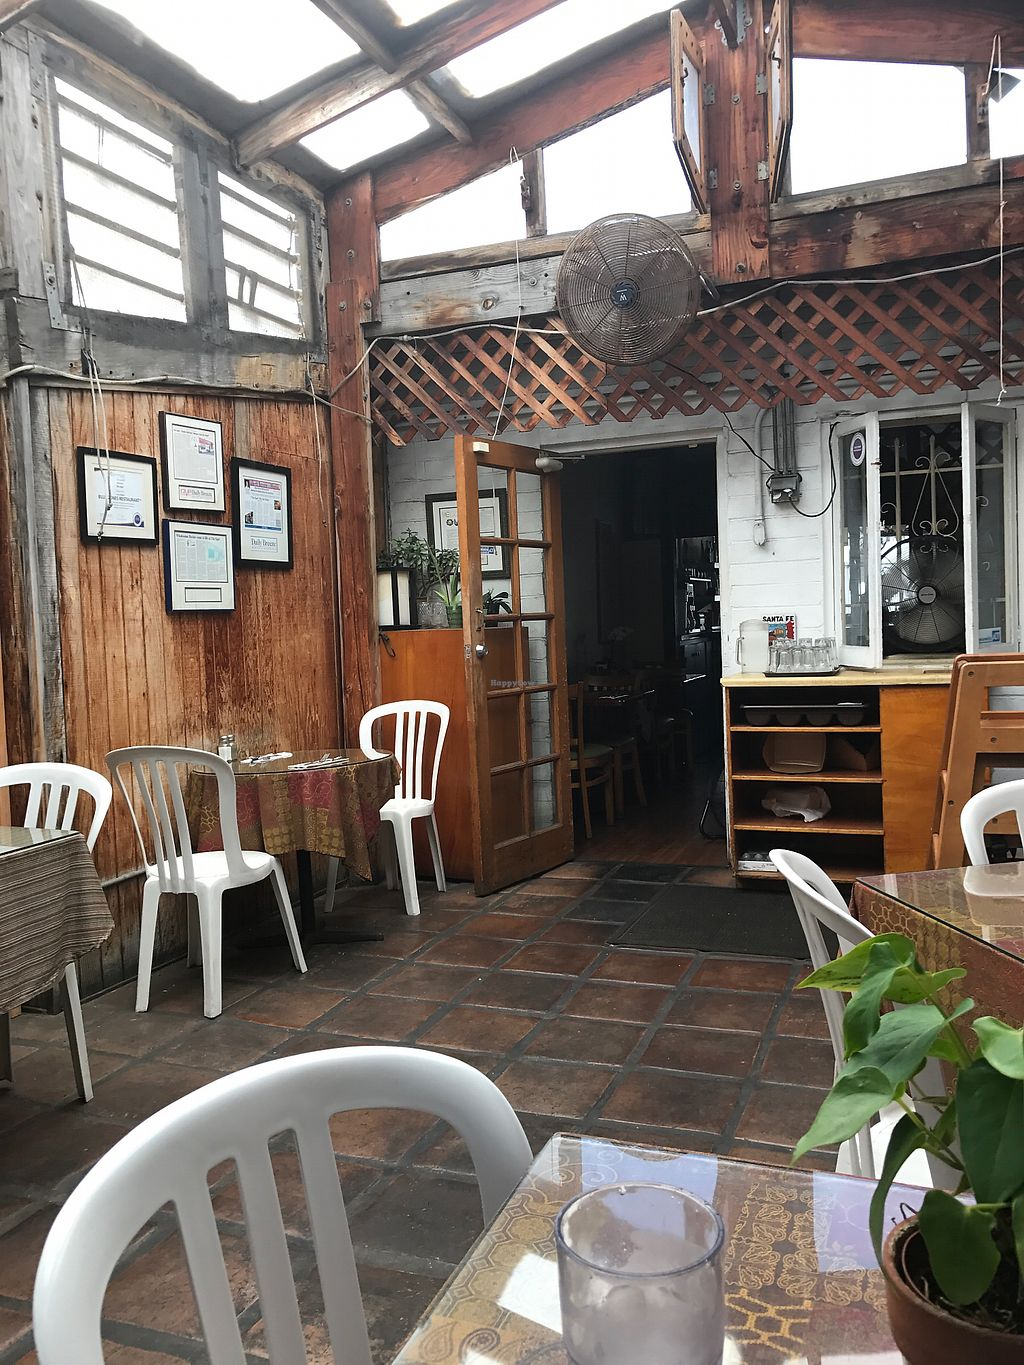 """Photo of The Spot Cafe  by <a href=""""/members/profile/koda668"""">koda668</a> <br/>outdoor patio <br/> July 19, 2017  - <a href='/contact/abuse/image/84808/282232'>Report</a>"""